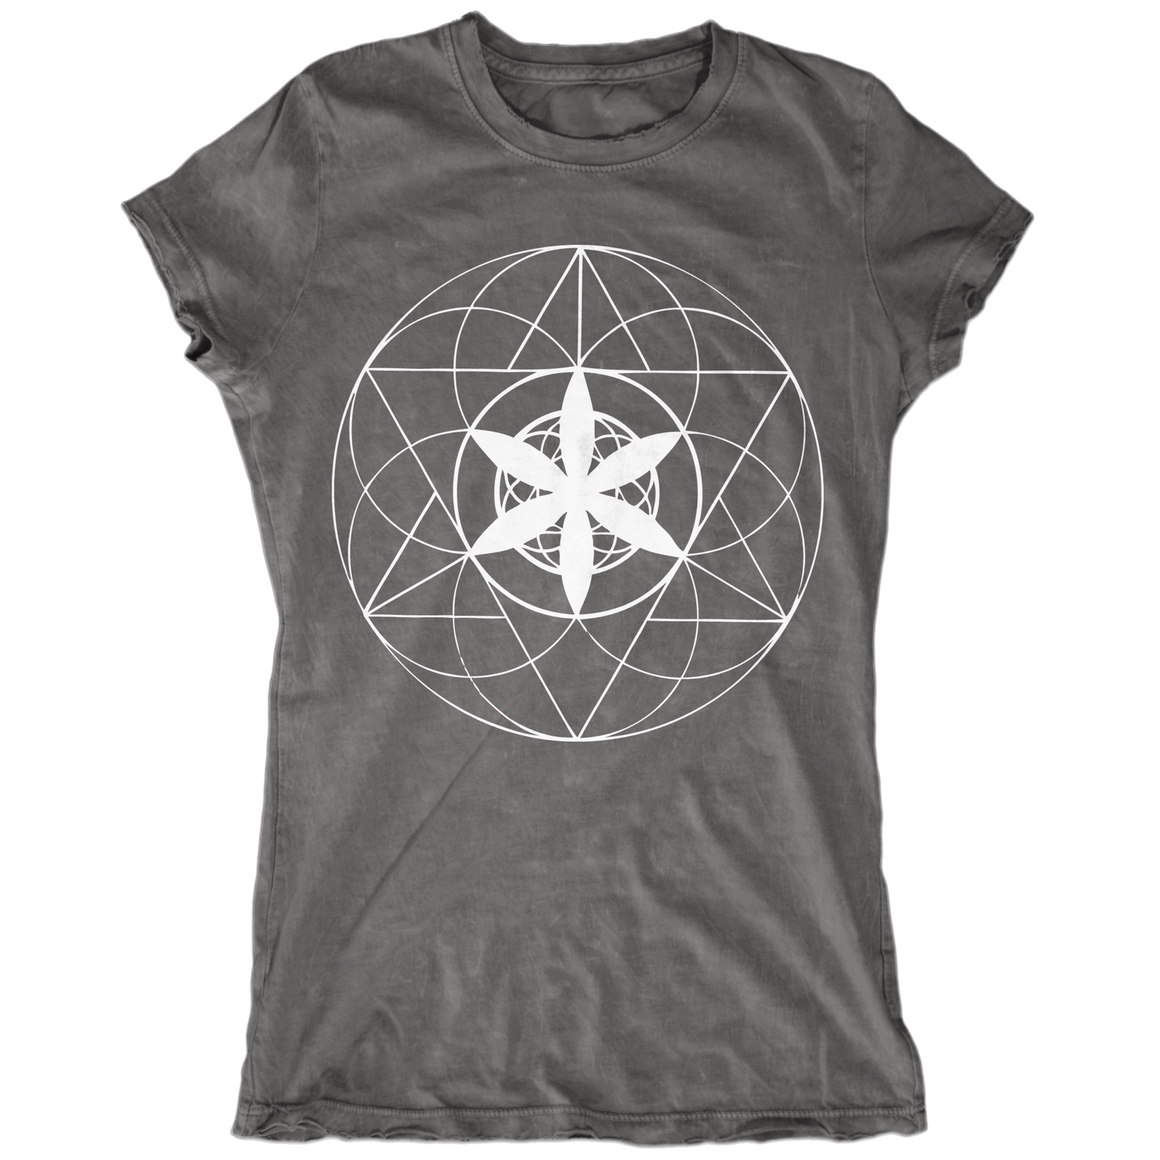 The great t shirt store tees for the everyhuman sacred geometry healing biocorpaavc Choice Image